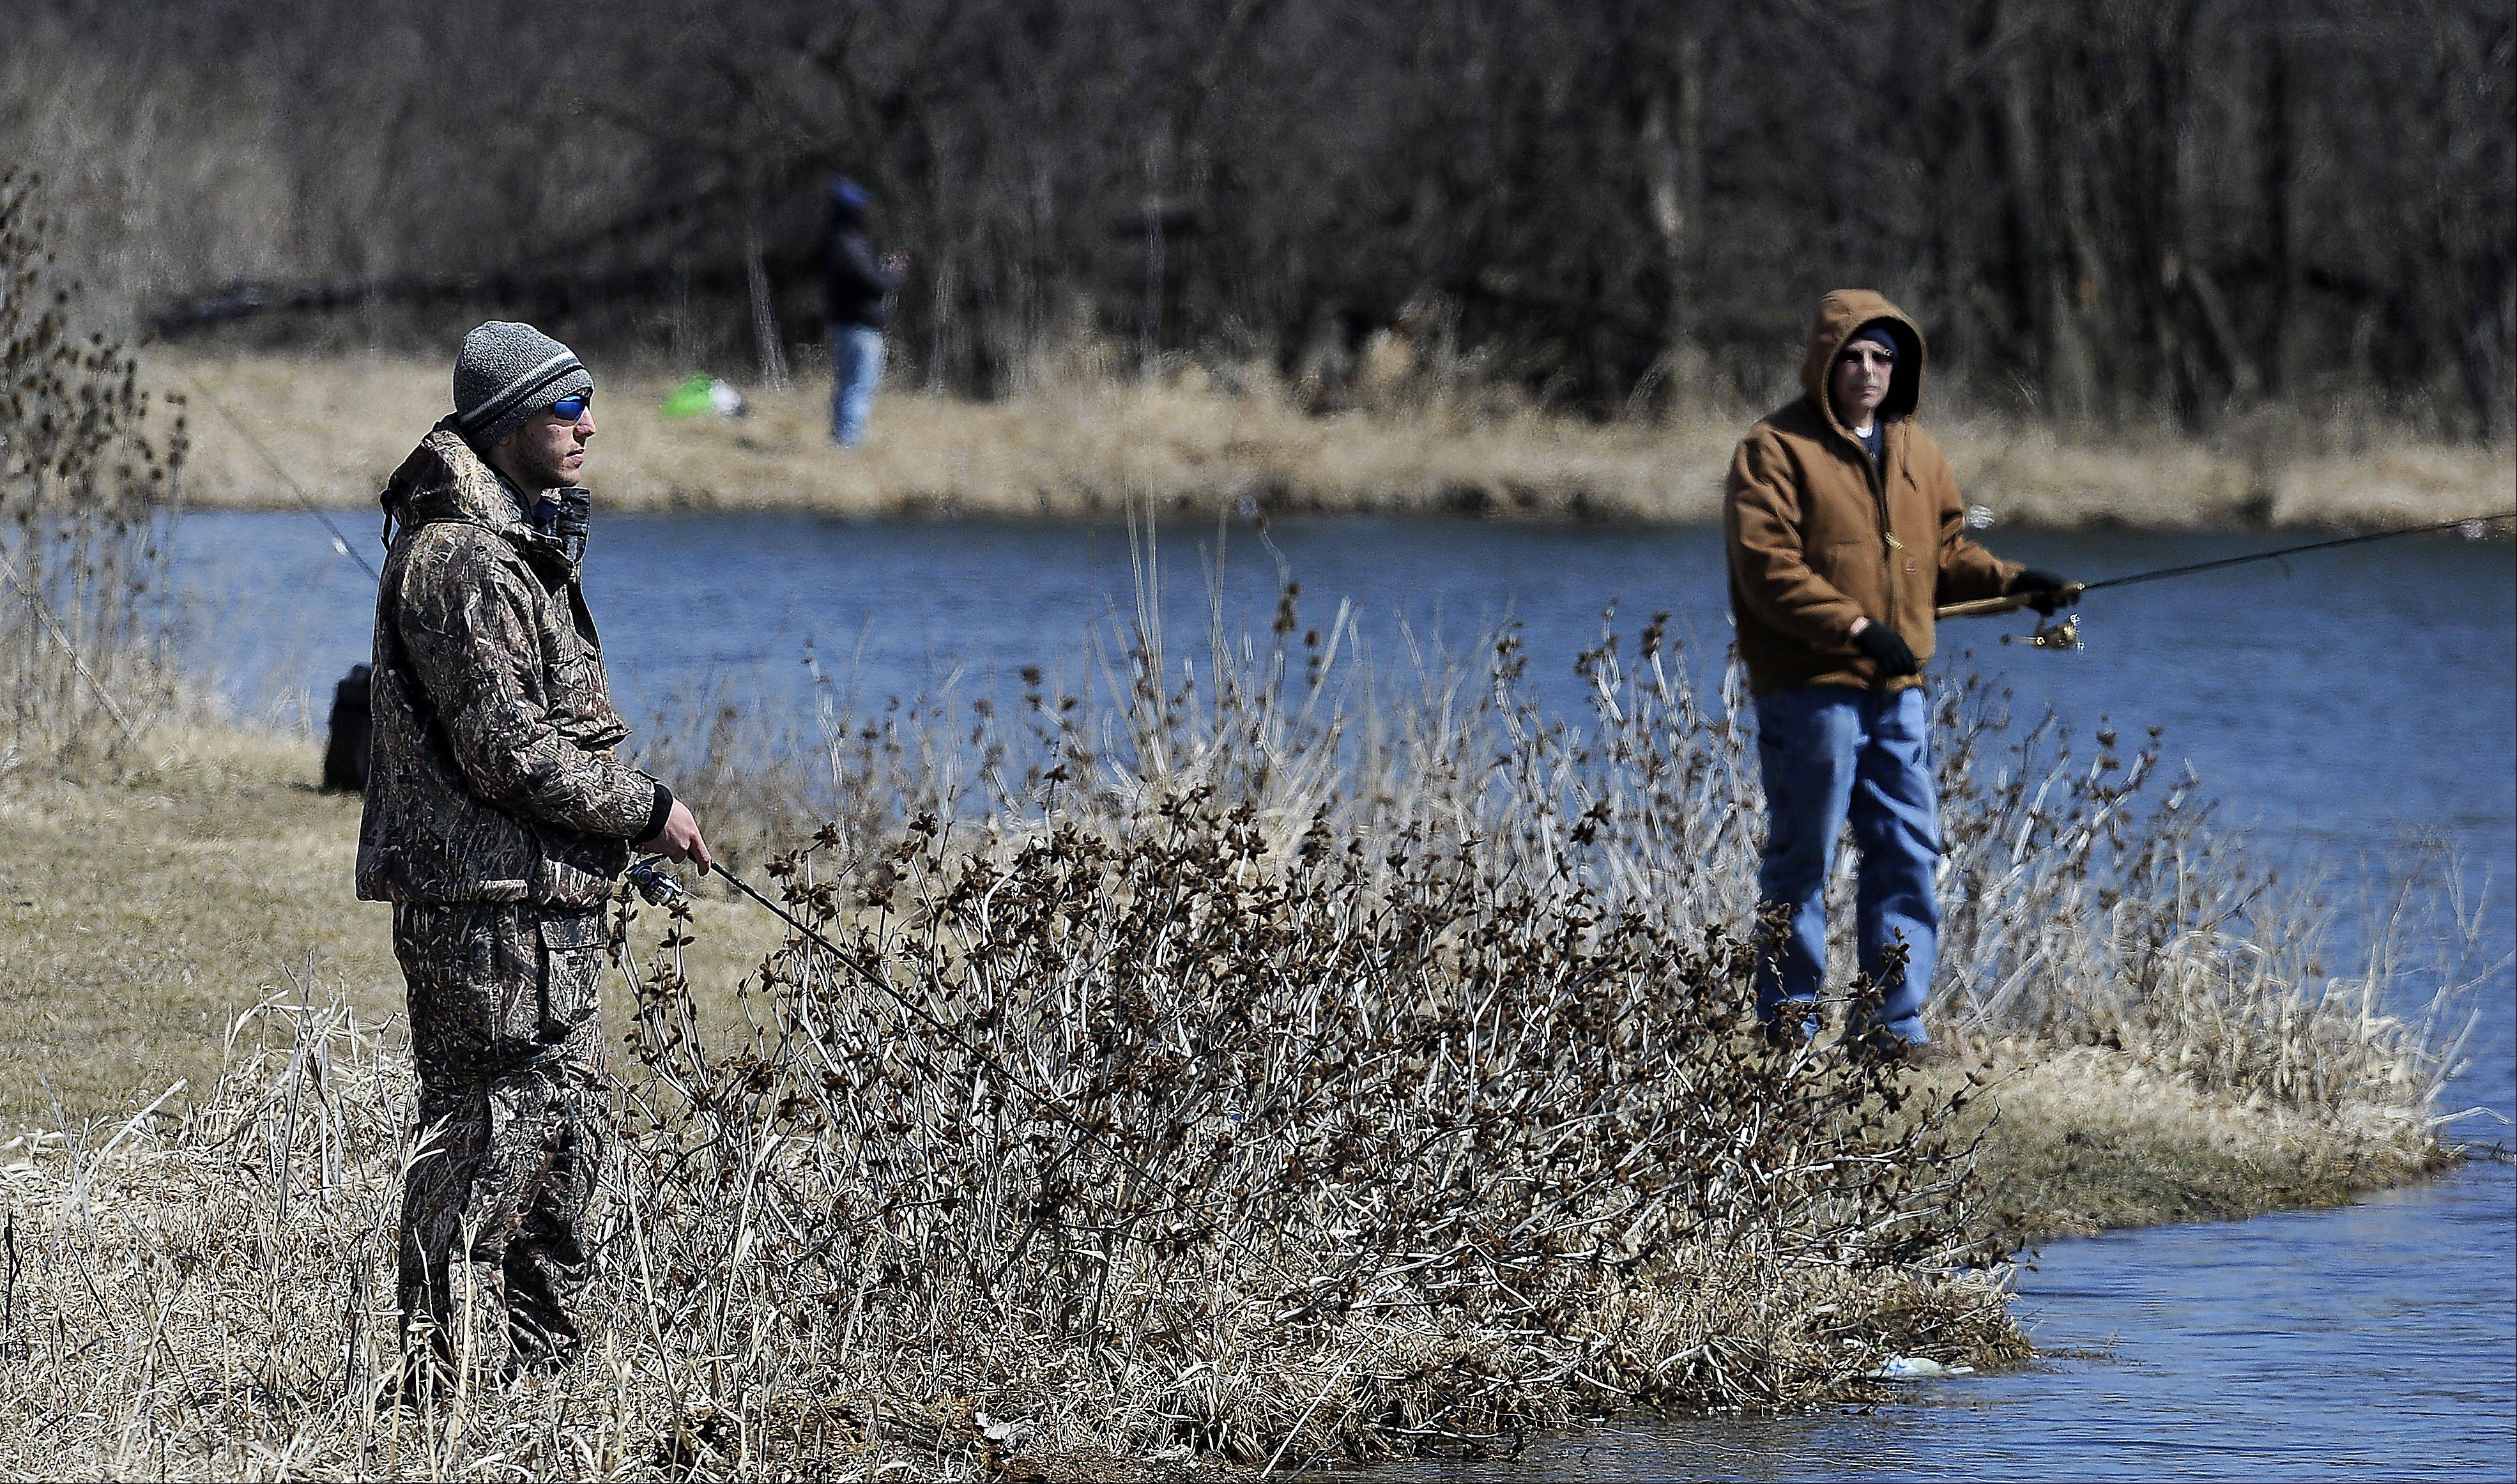 Frank Ryan and his dad Don, both of Schaumburg, didn't feel like taking in the Sox's home opener on Monday, so the next best thing is fishing at Busse Woods in a 28 degree wind chill.